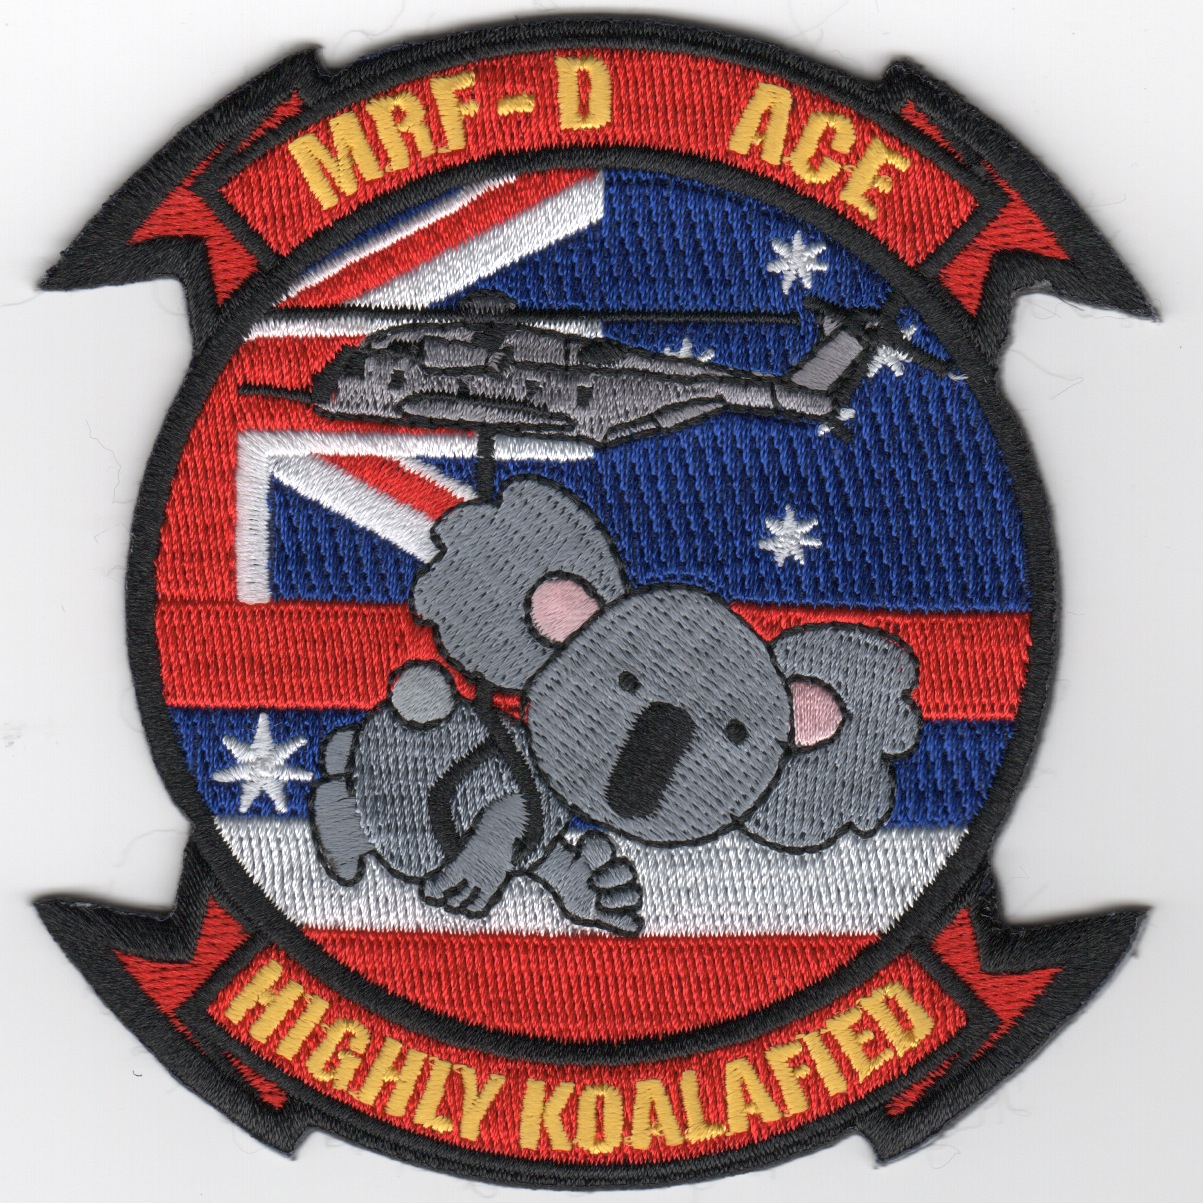 HMH-463 'Koala-fied' Patch